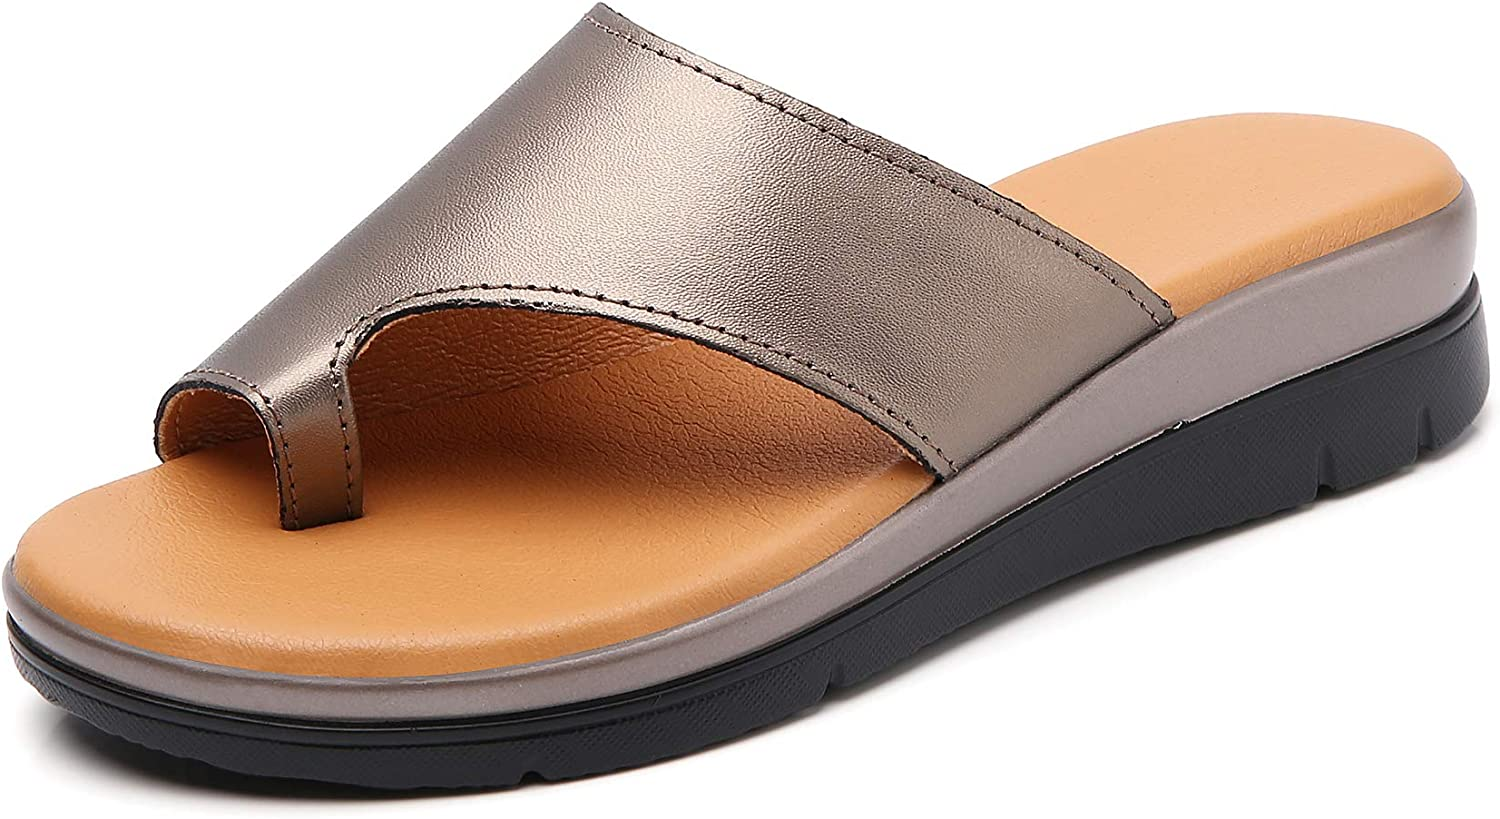 Bunion Sandals for Women Comfy